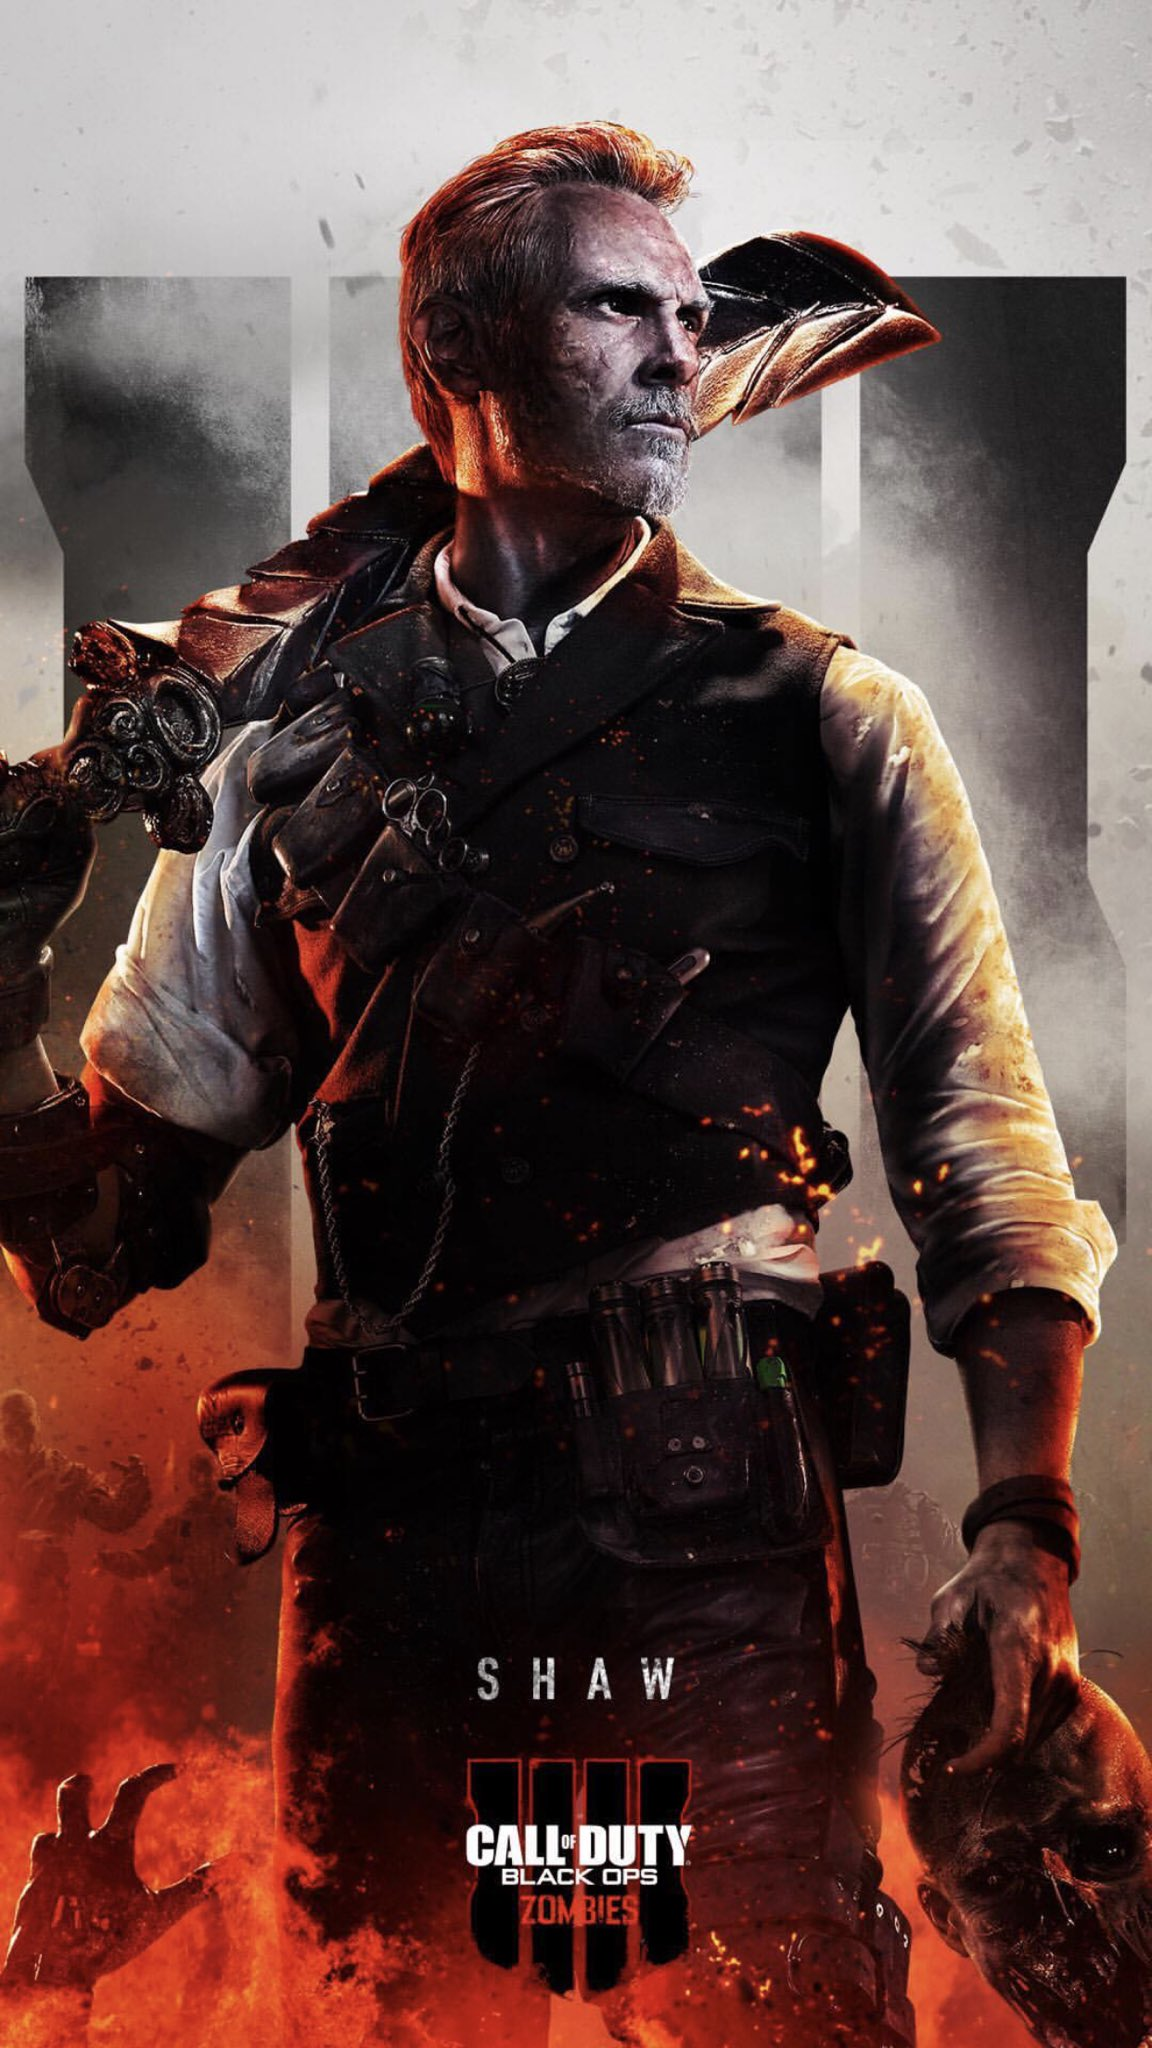 Black Ops 3 Zombies Wallpaper 1152x2048 Download Hd Wallpaper Wallpapertip